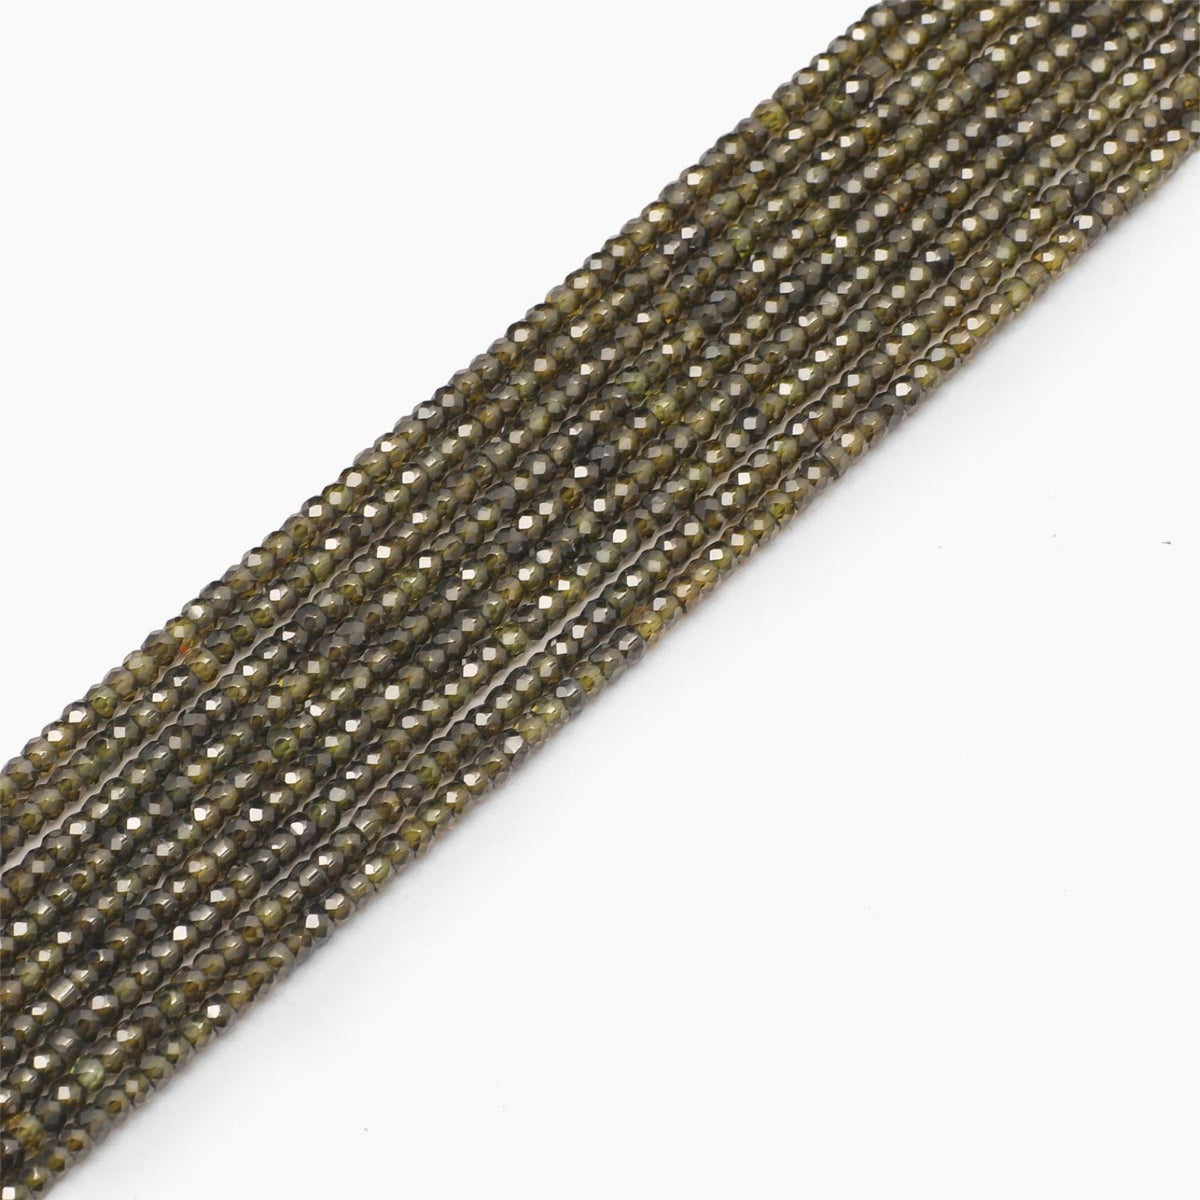 Dark Olive Faceted Cubic Zirconia Beads- Sold Per Strand